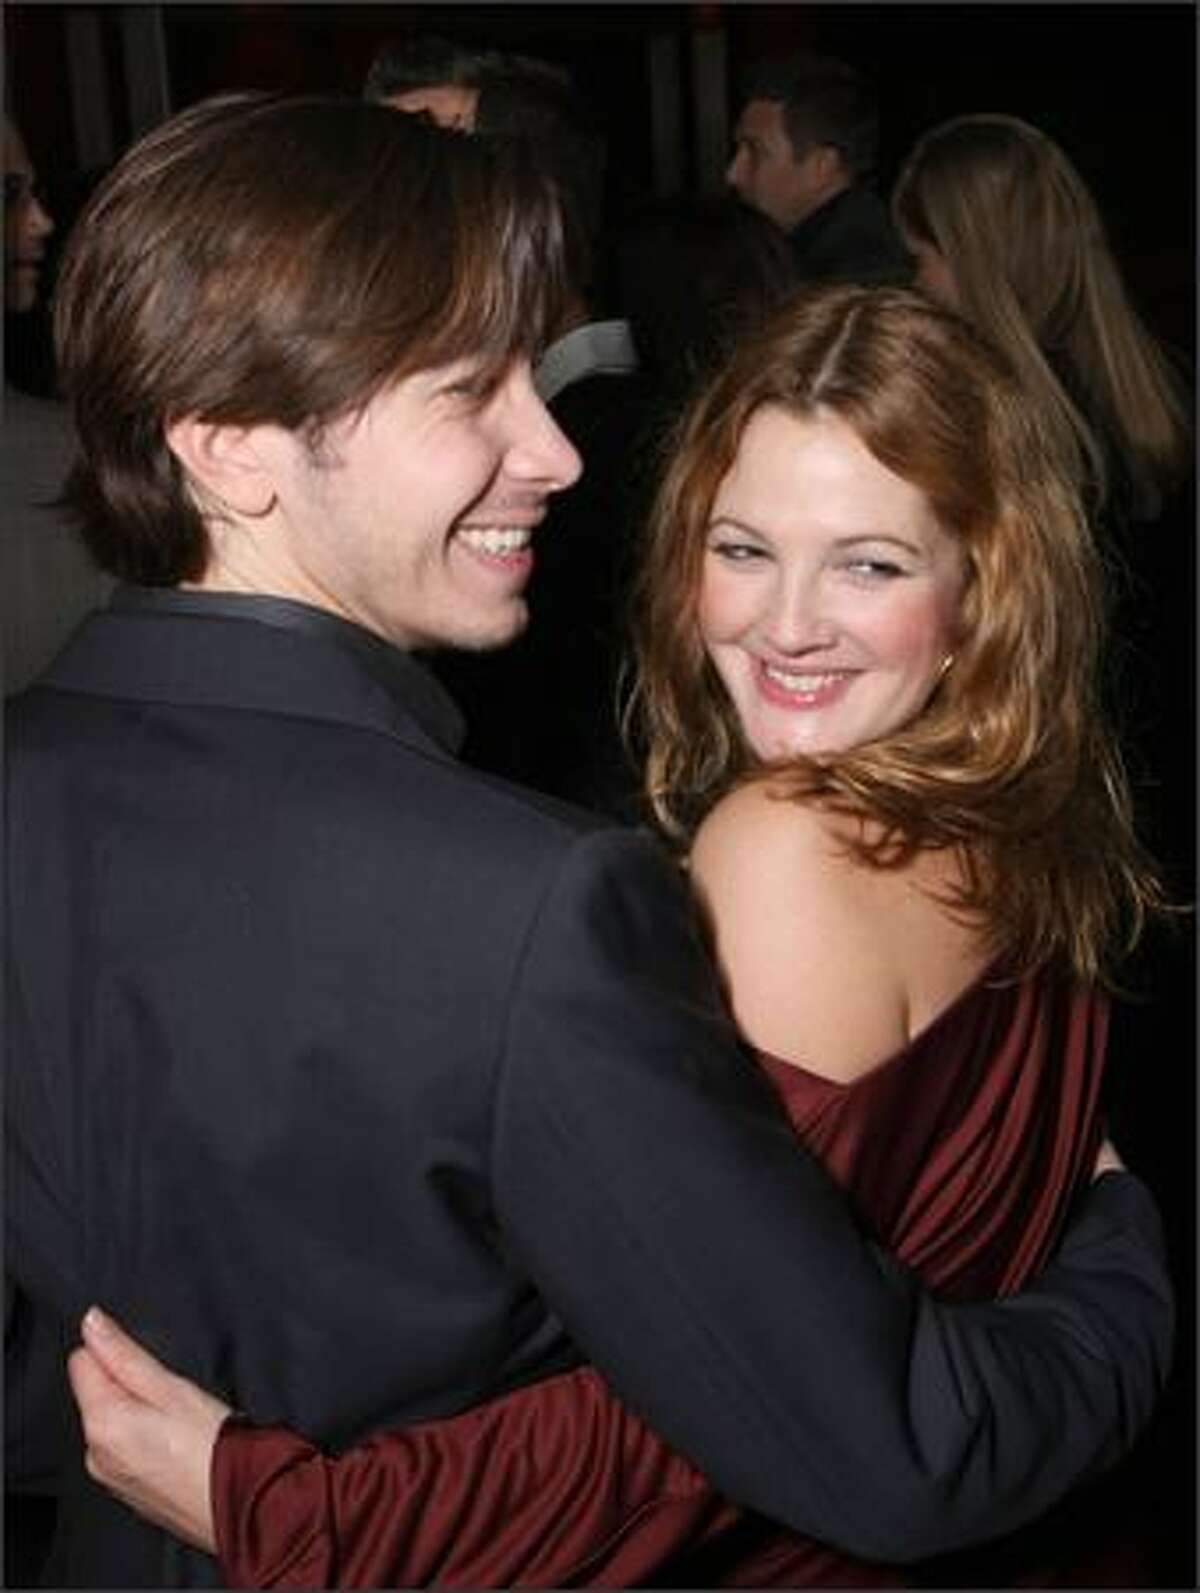 Actor Justin Long and actress Drew Barrymore arrive at Picture House's premiere of